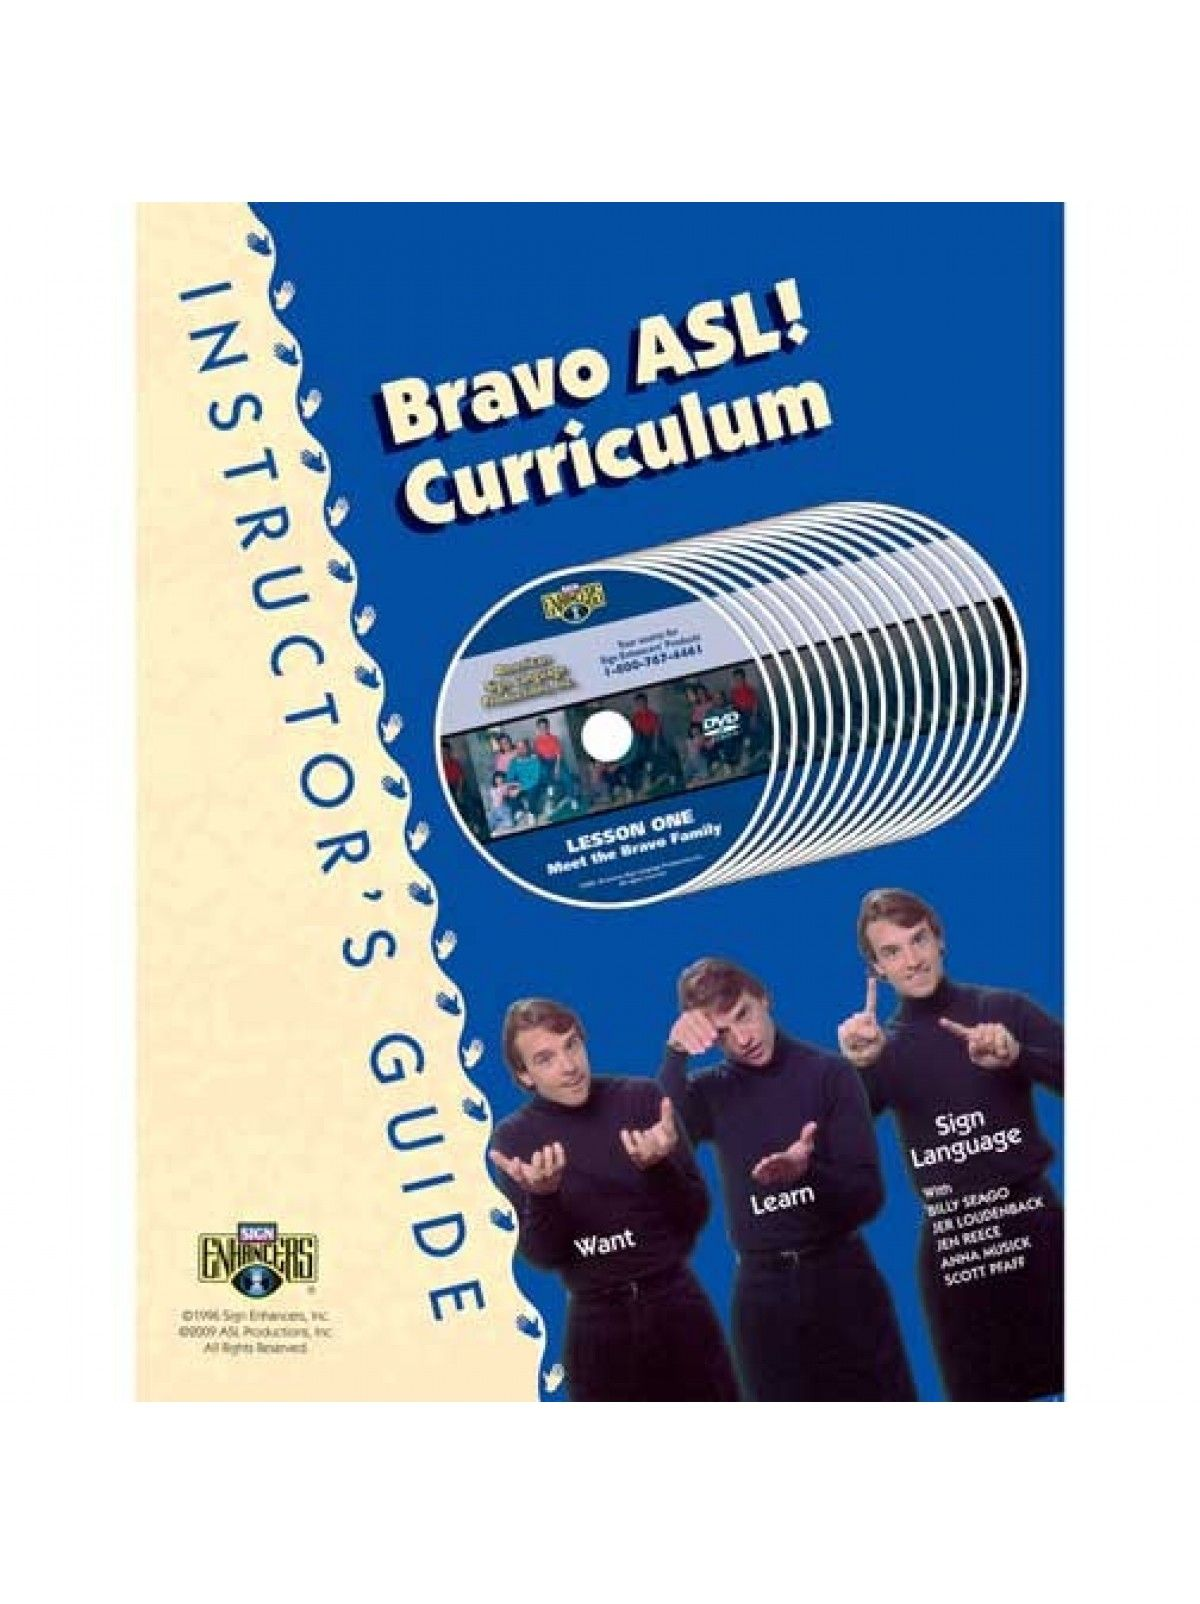 Bravo ASL Curriculum Instructor S Guide